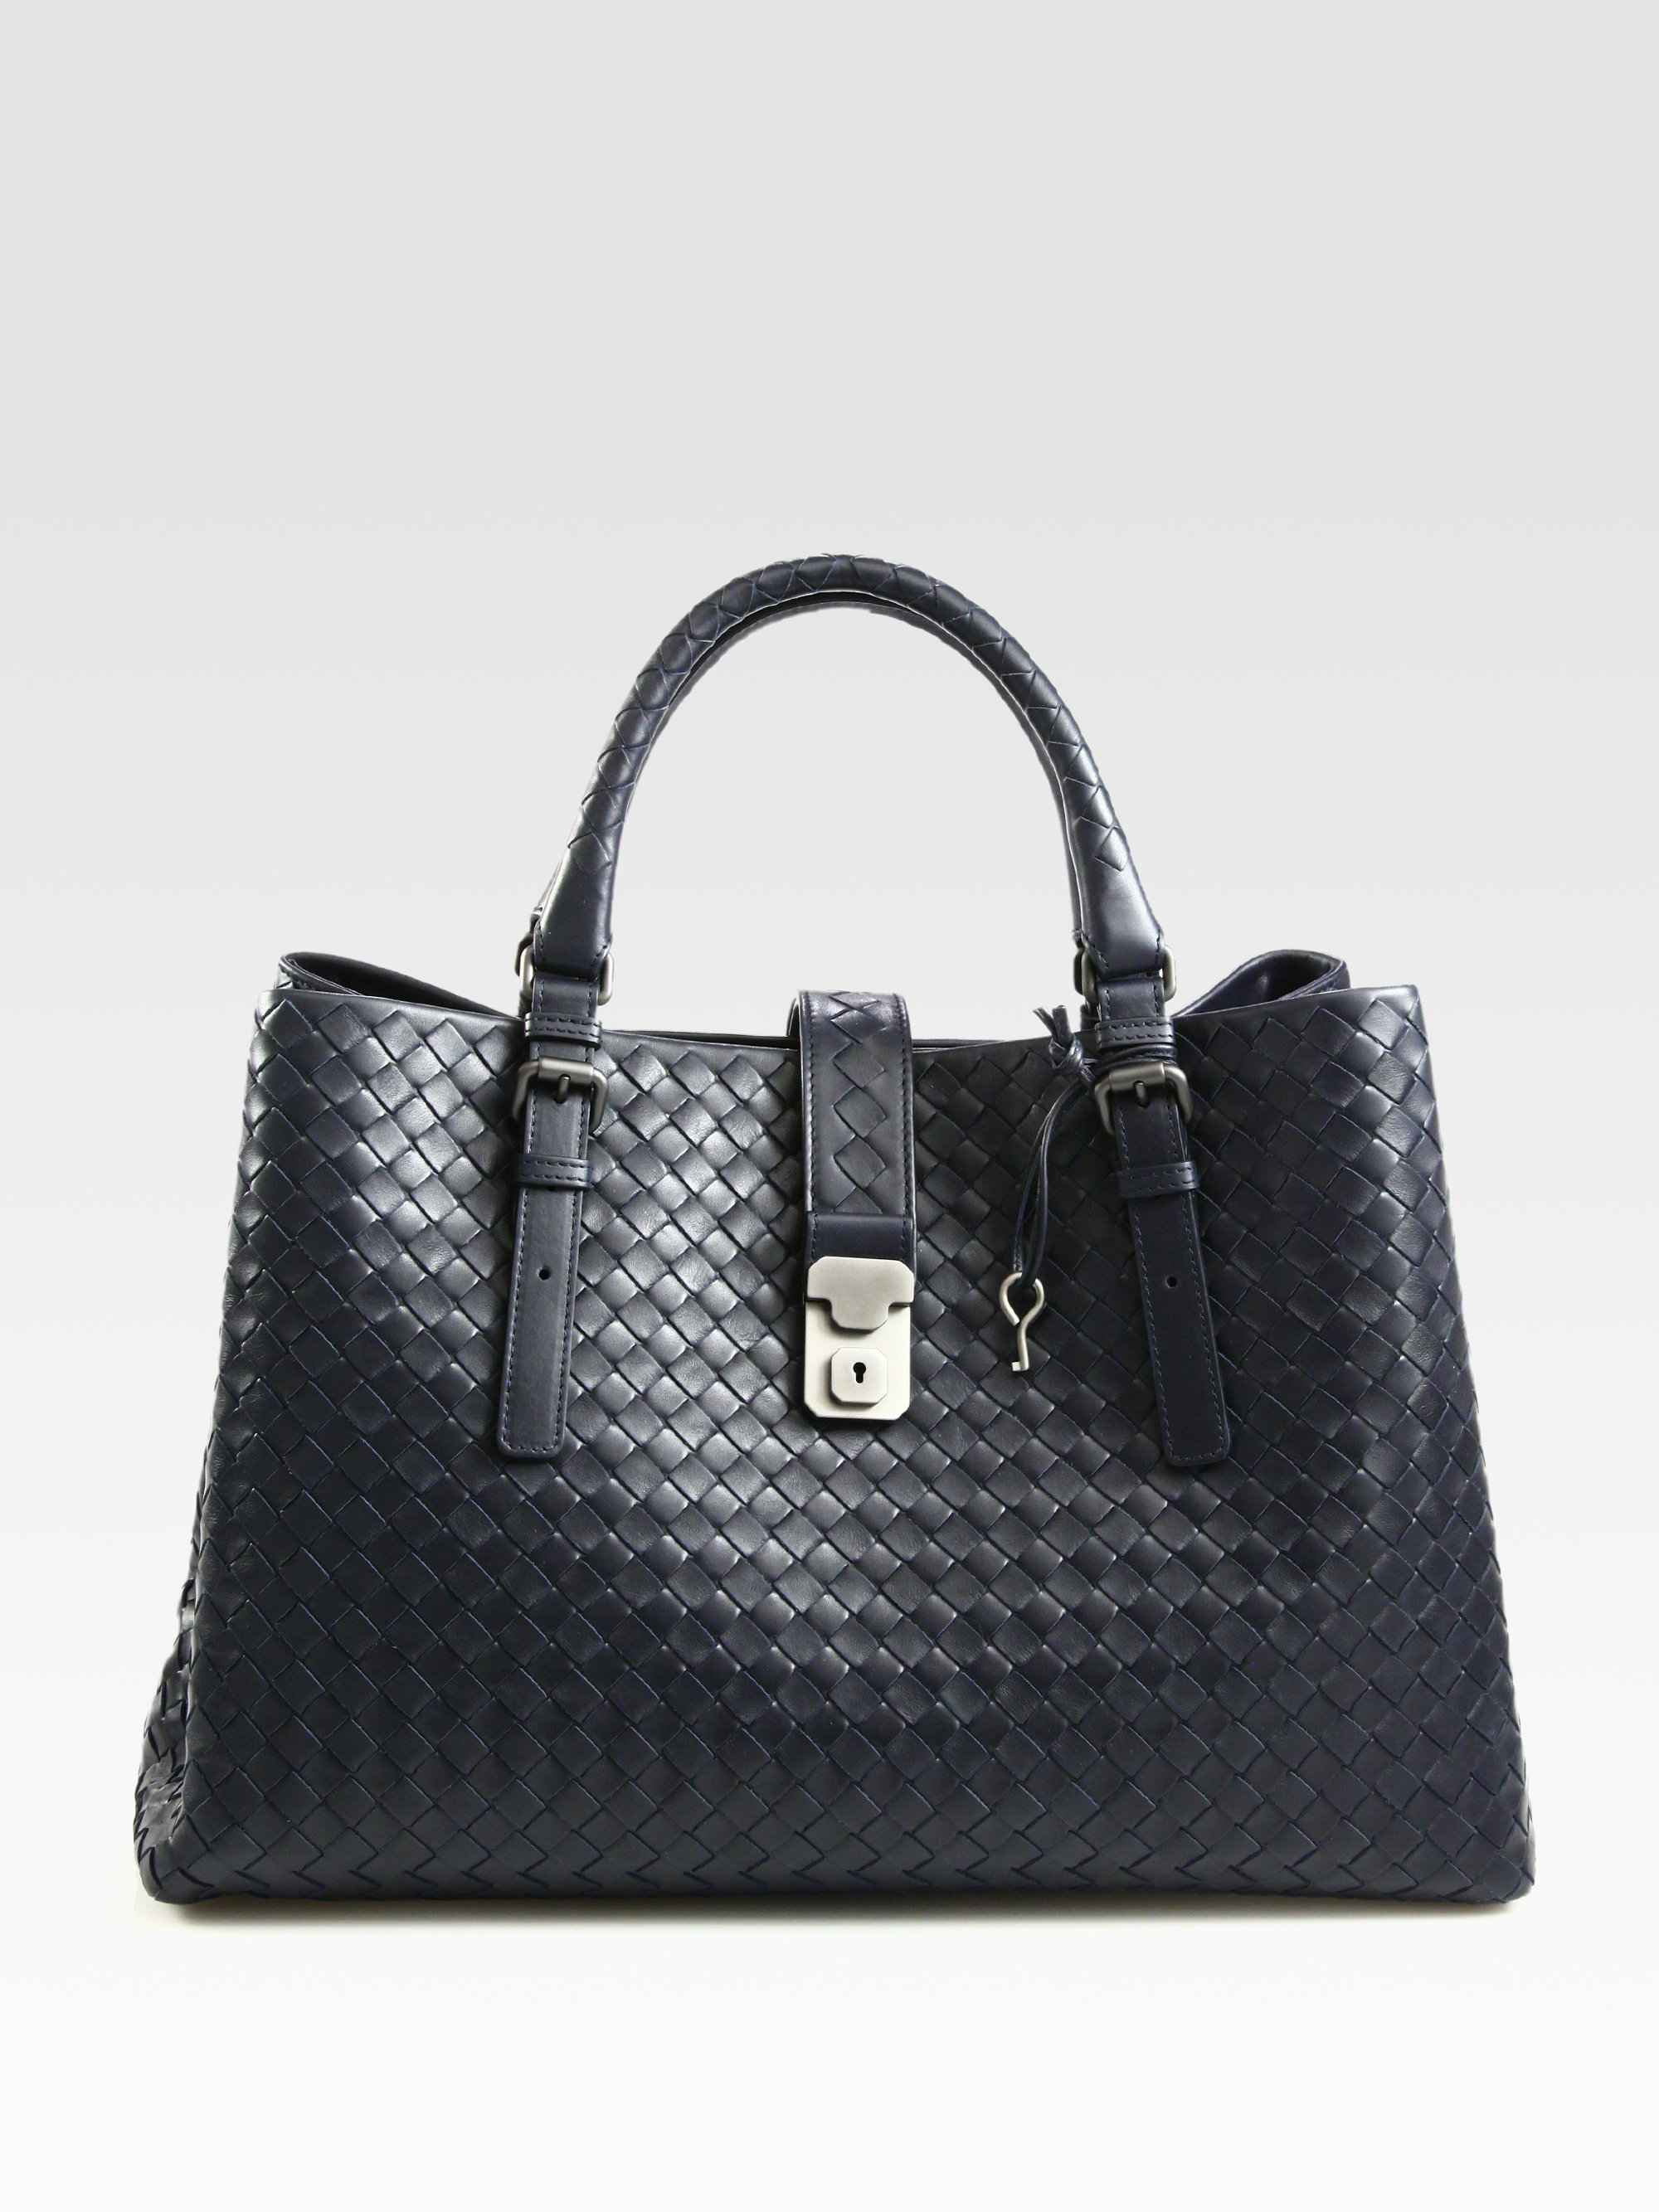 Borse Bottega Veneta 2013 : Bottega veneta roma medium intrecciato leather satchel in